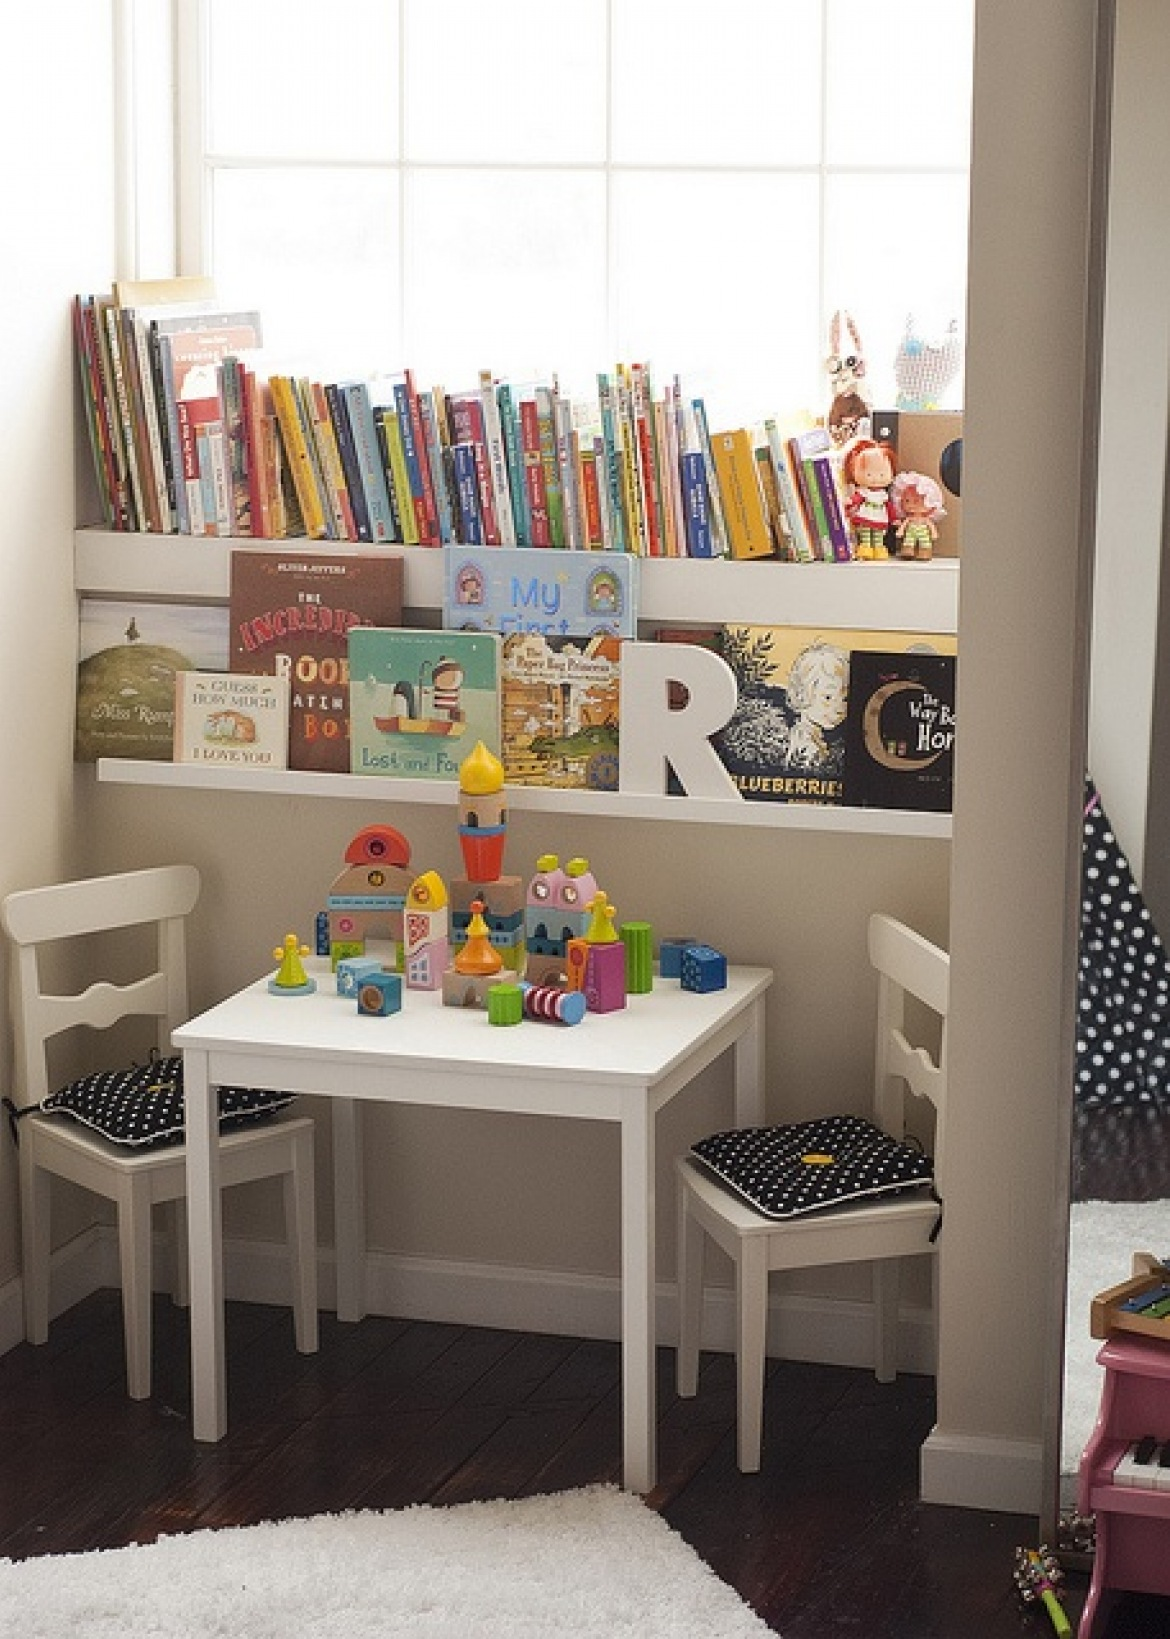 Entertaining Reading Nook For Your Kids To Enjoy The Wonderful Knowledge From Books